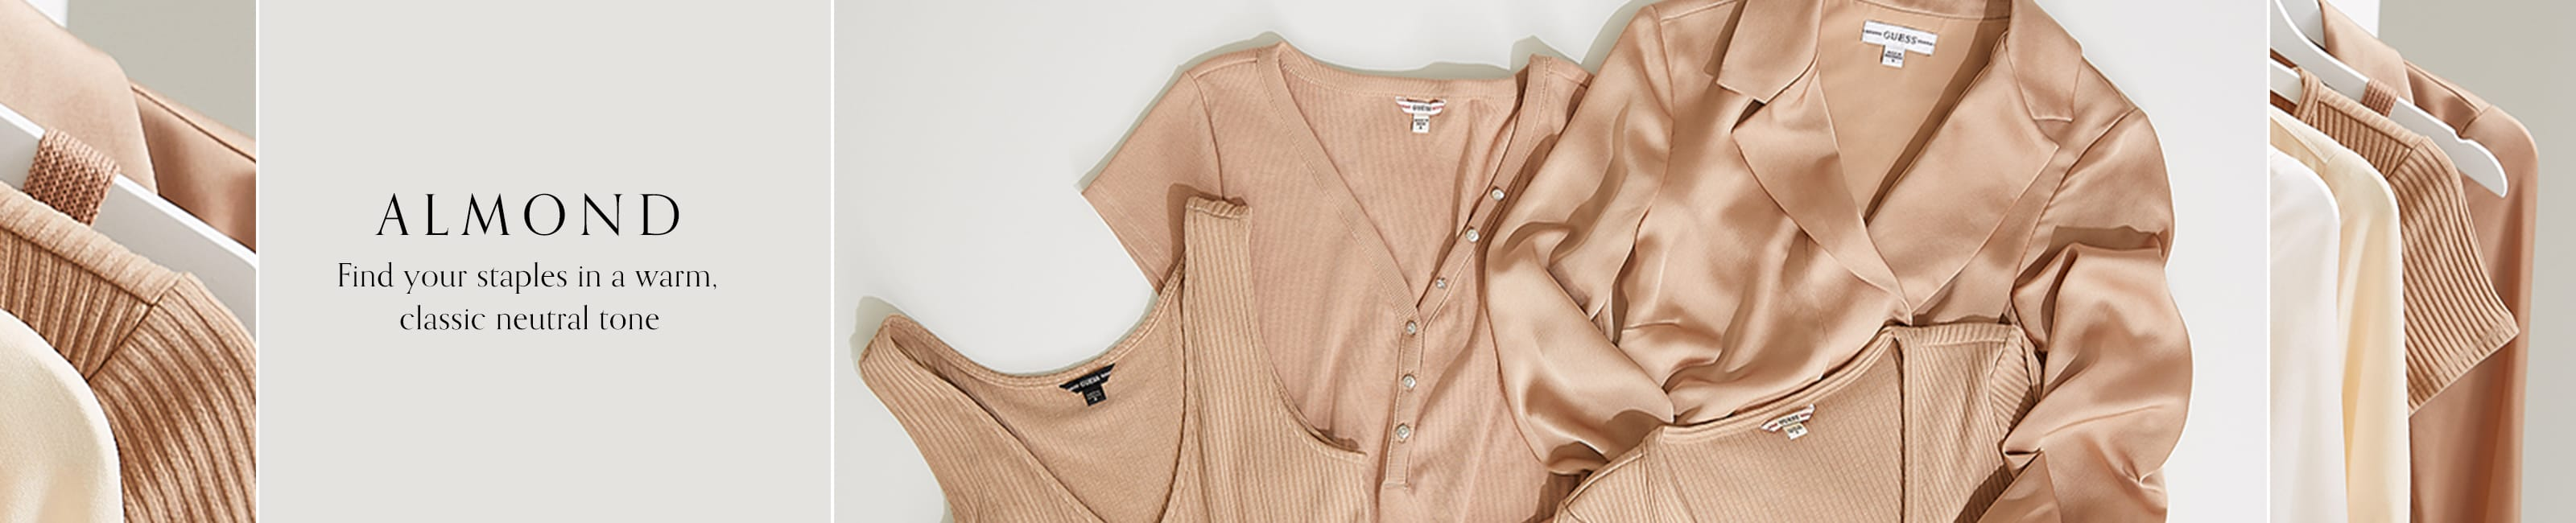 Almond Find your staples in a warm, classic neutral tone